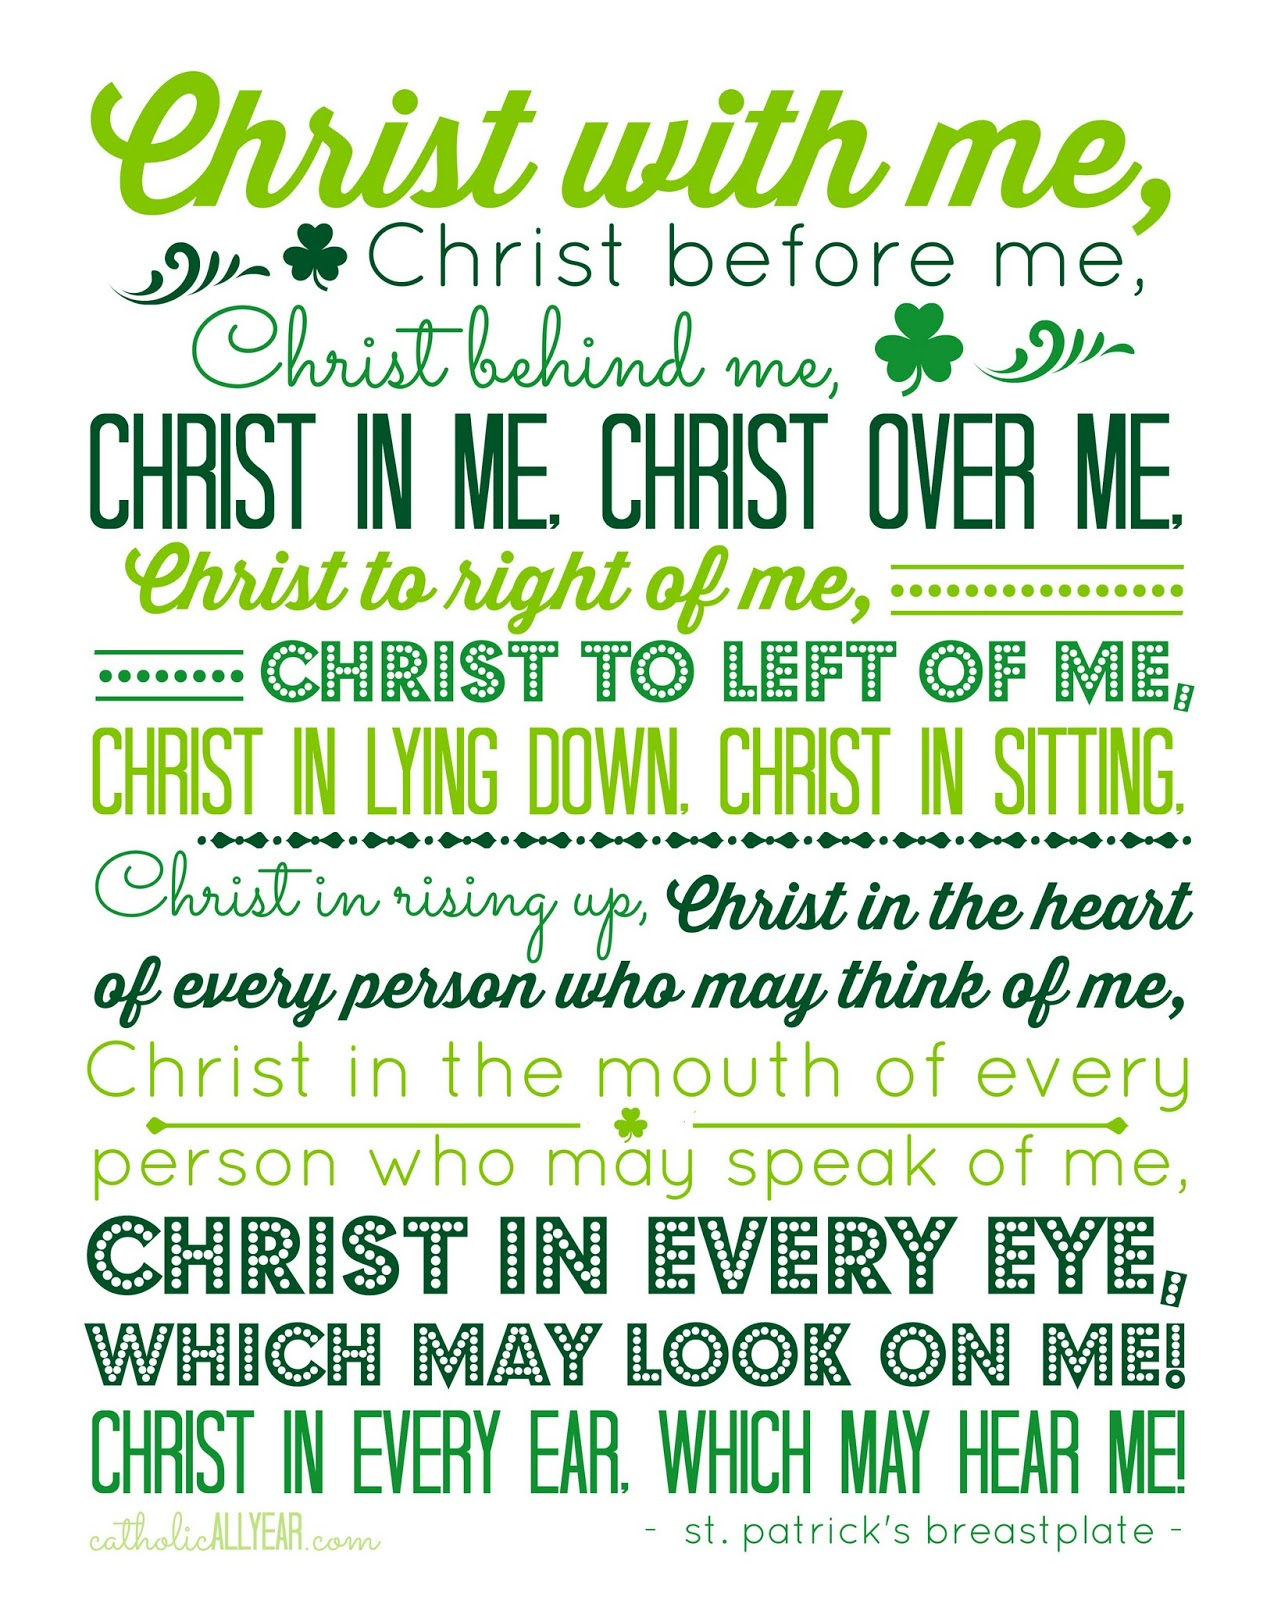 A Prayer For St Patrick S Day